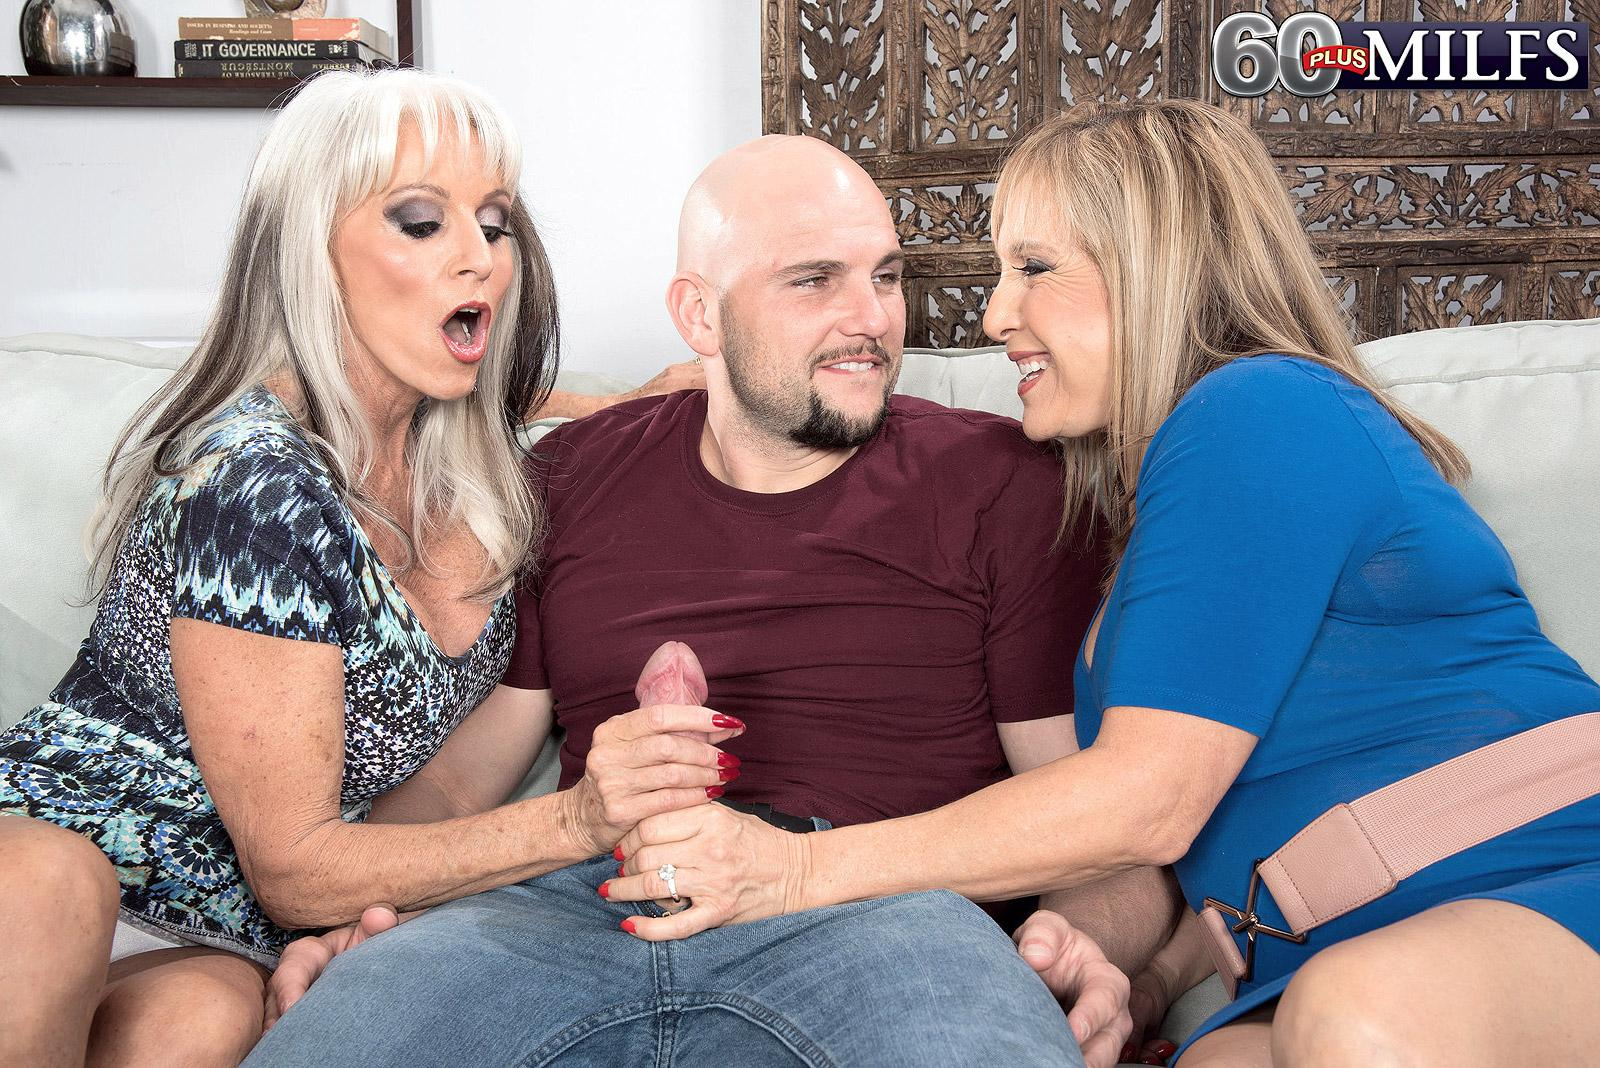 60 plus cougars Sally D'Angelo and Luna Azul give a dual hand-job and oral job